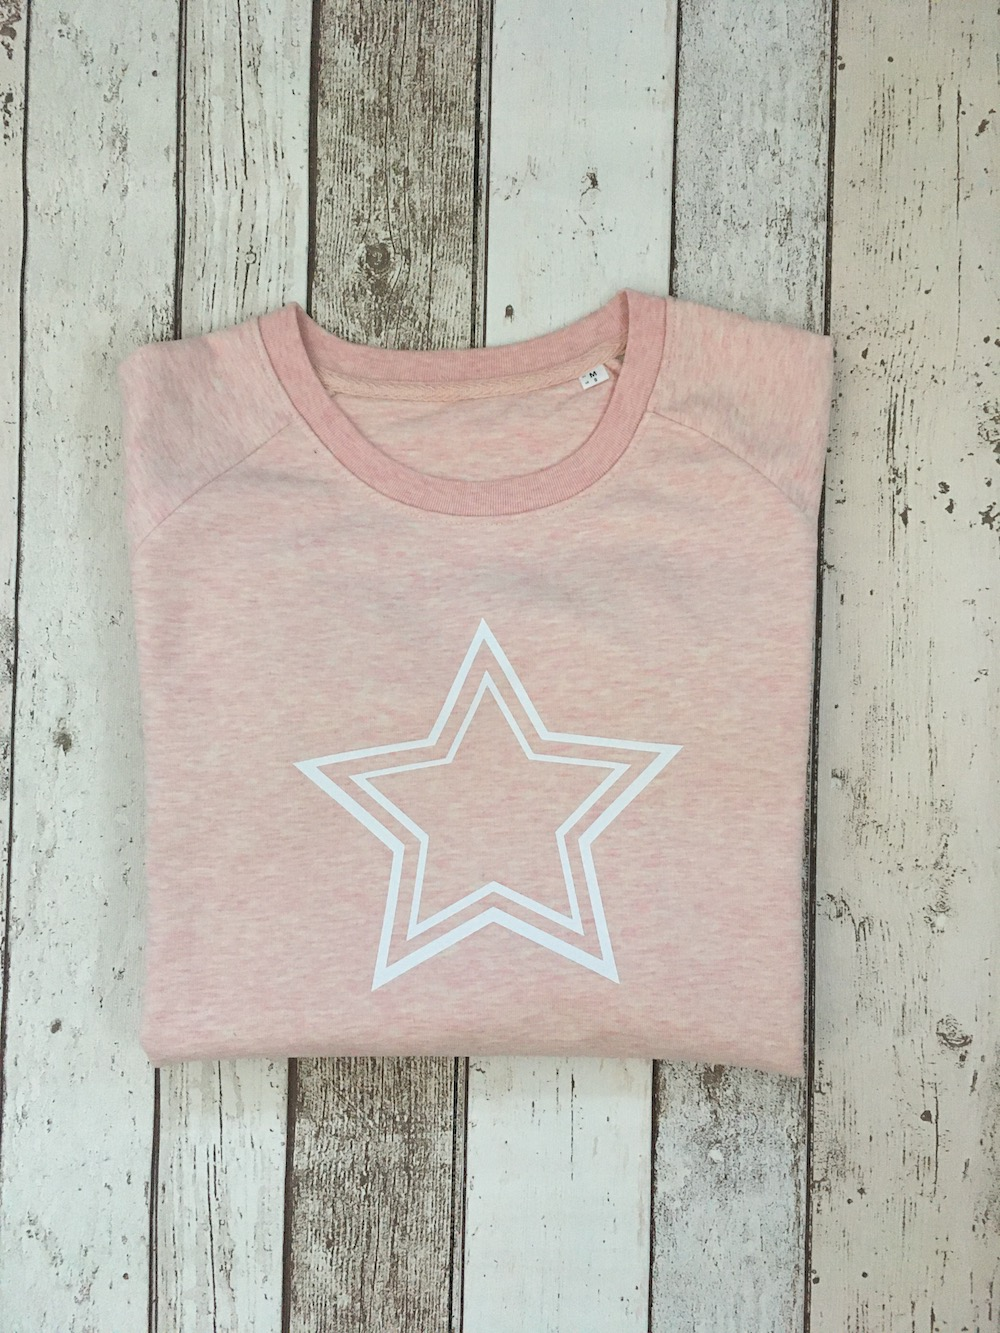 Double Star Super Soft Sweatshirt -Heather Pink